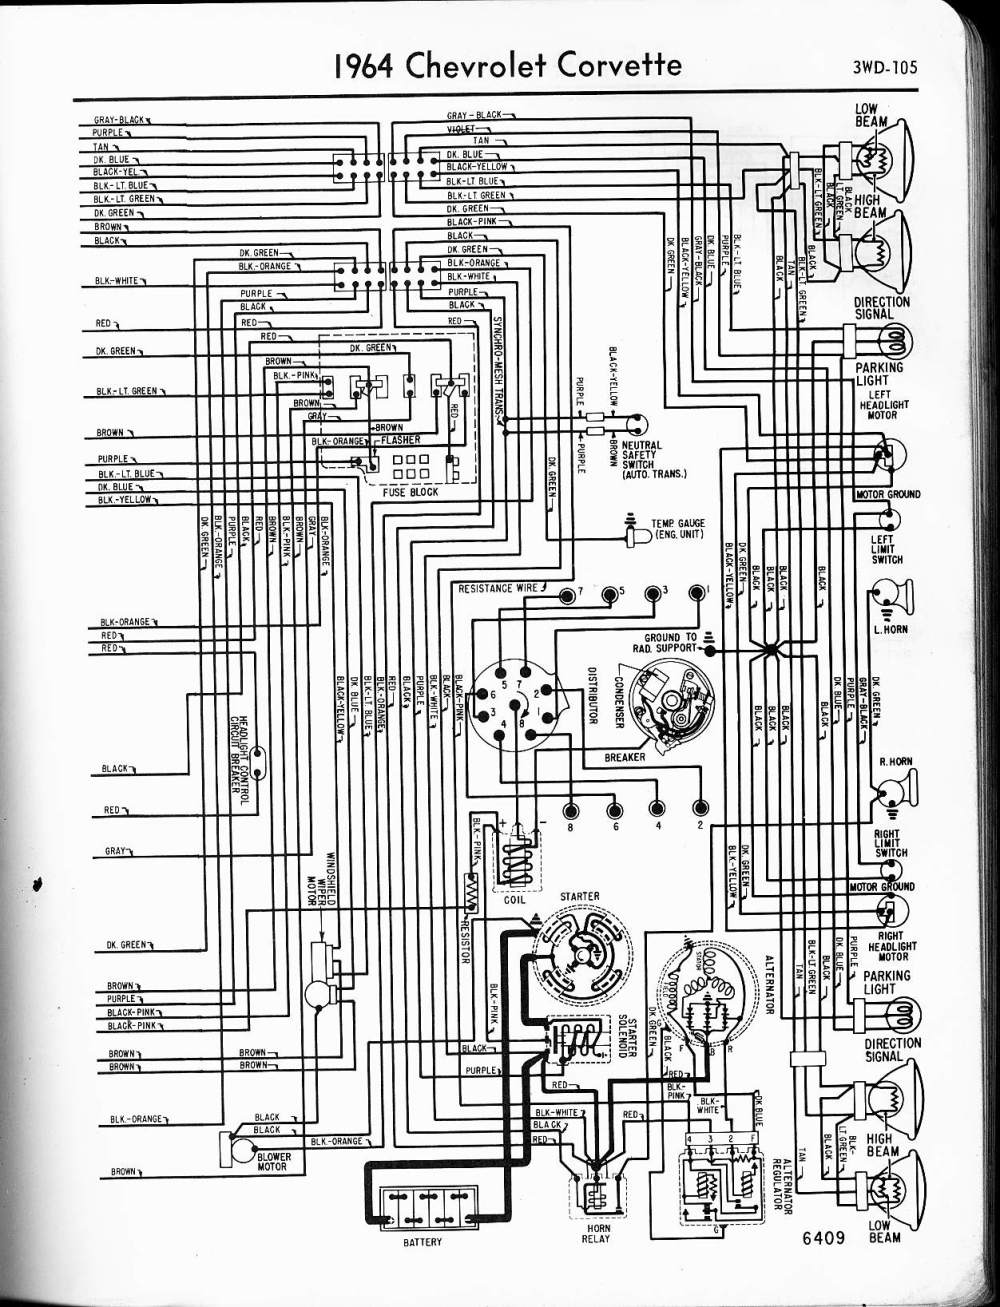 medium resolution of 62 chevy corvette wiring diagram expert schematics diagram rh atcobennettrecoveries com 1980 corvette battery wiring diagram